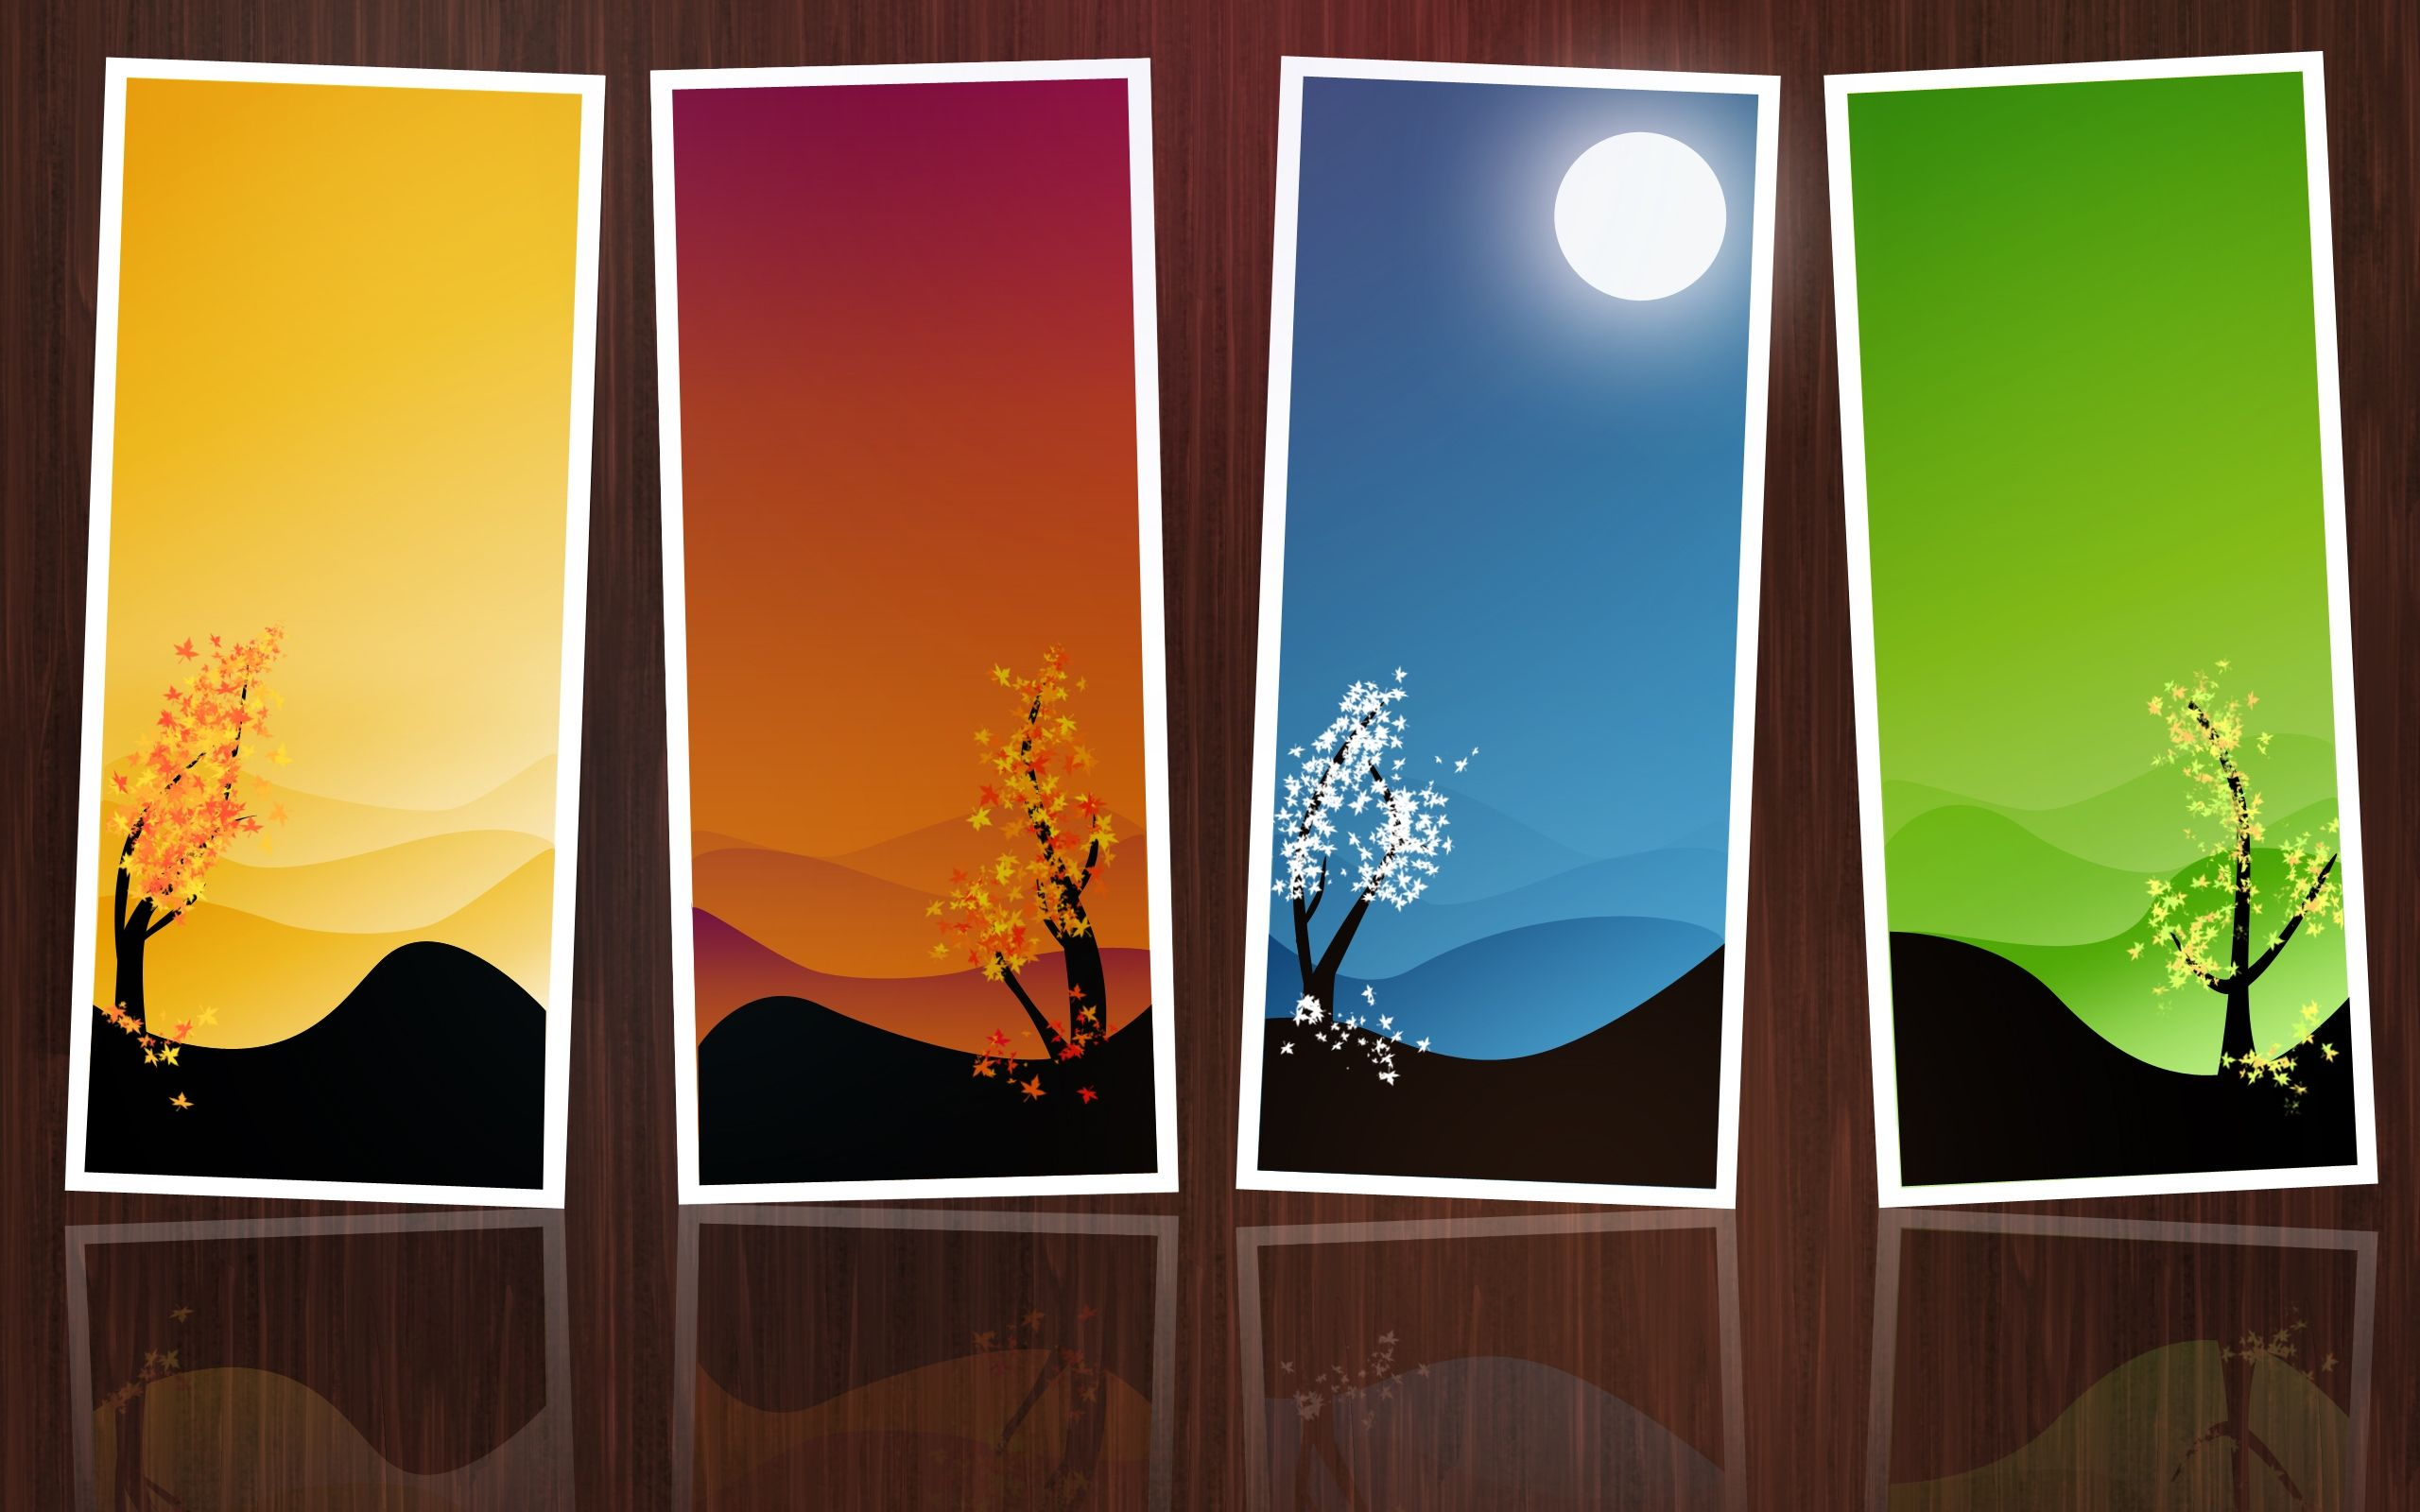 2560x1600 Amazing Background Wallpapers | Seasons HQFX (26+) Wallpapers